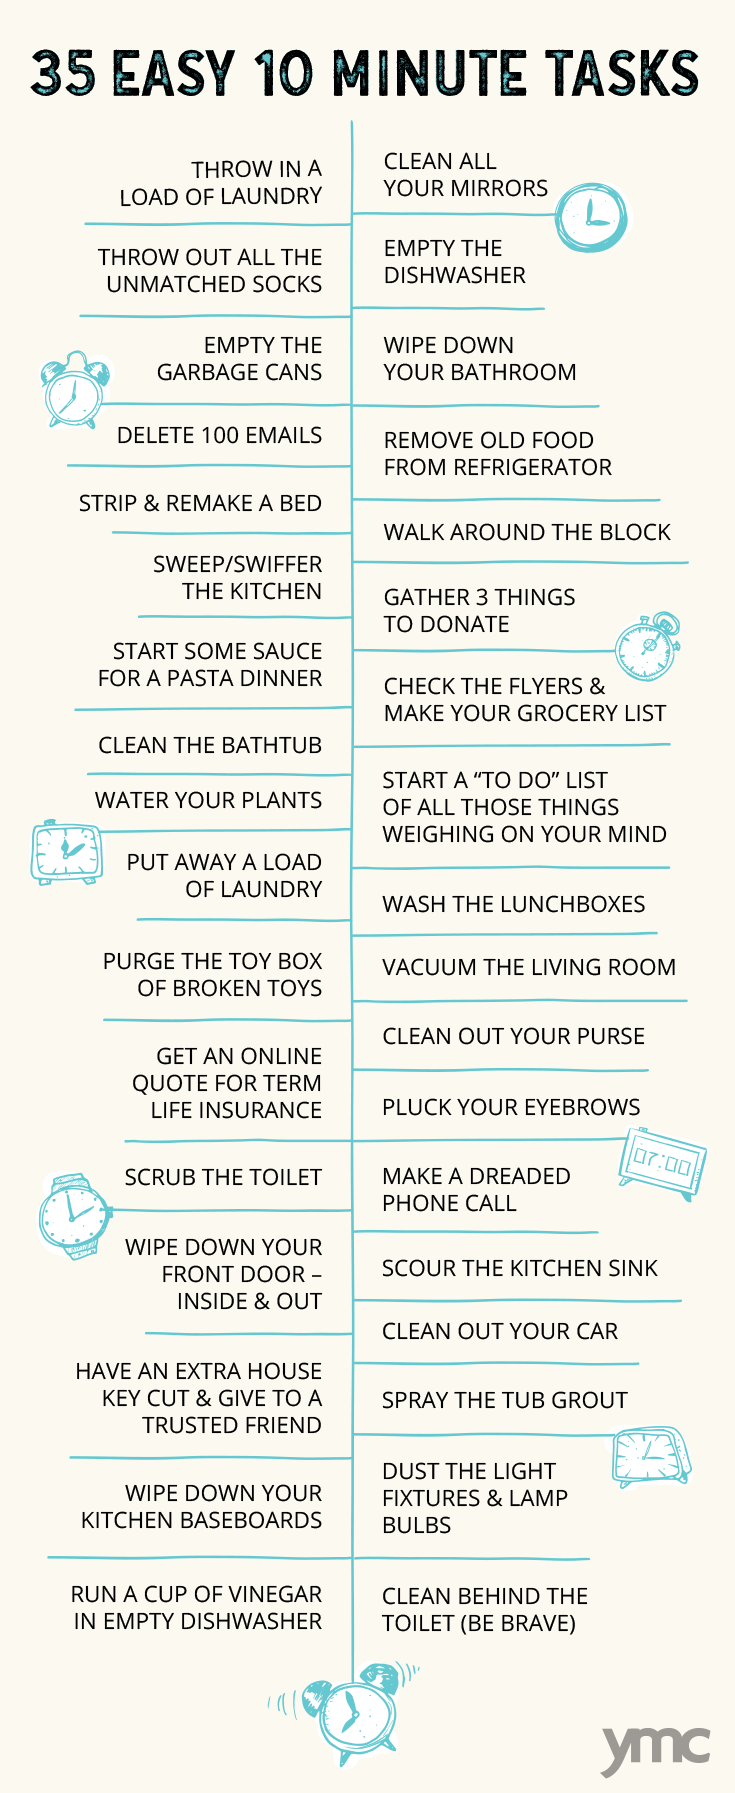 Set a timer, because here's a list of chores you can do in 10-12 minutes: